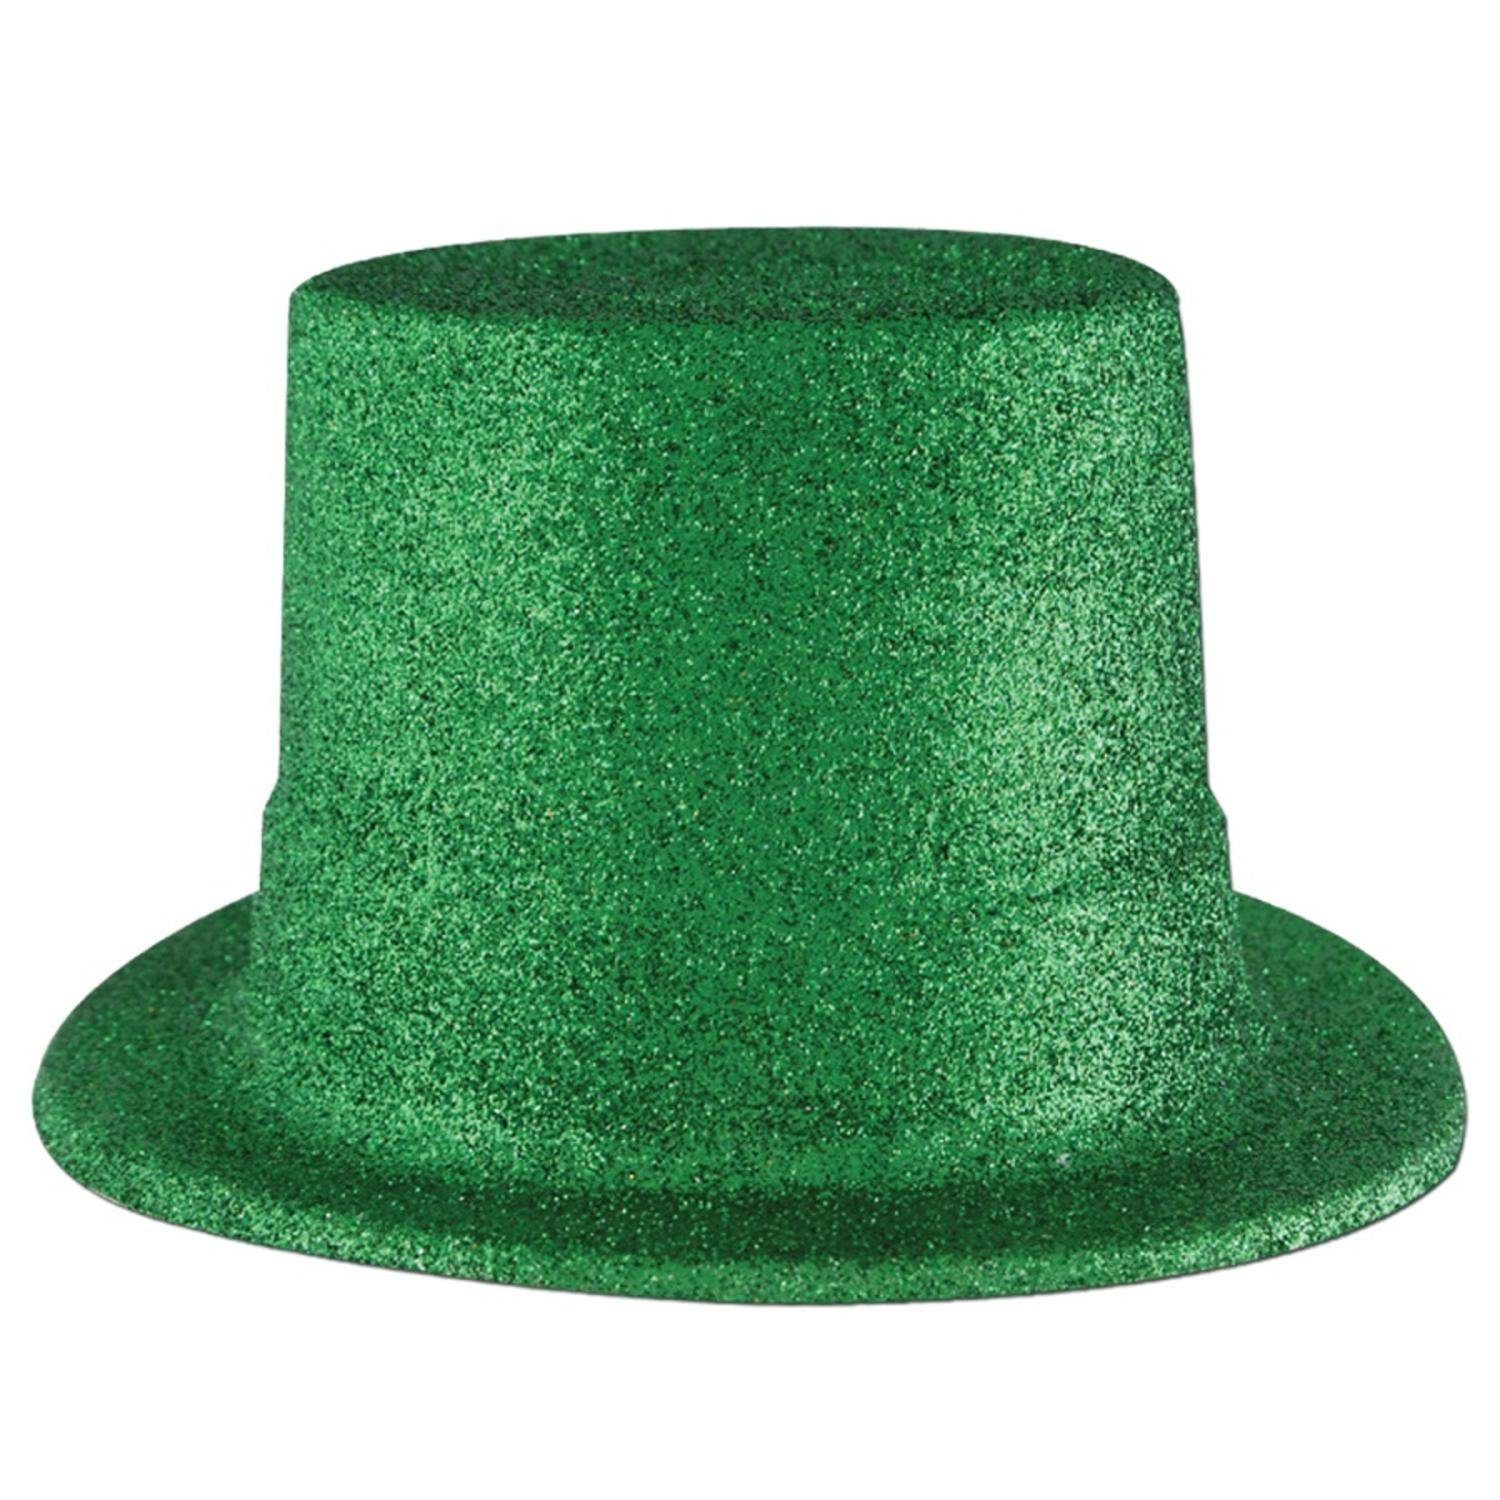 Pack of 24 Green Glittered St. Patrick's Day Top Hat Costume Accessories by Party Central